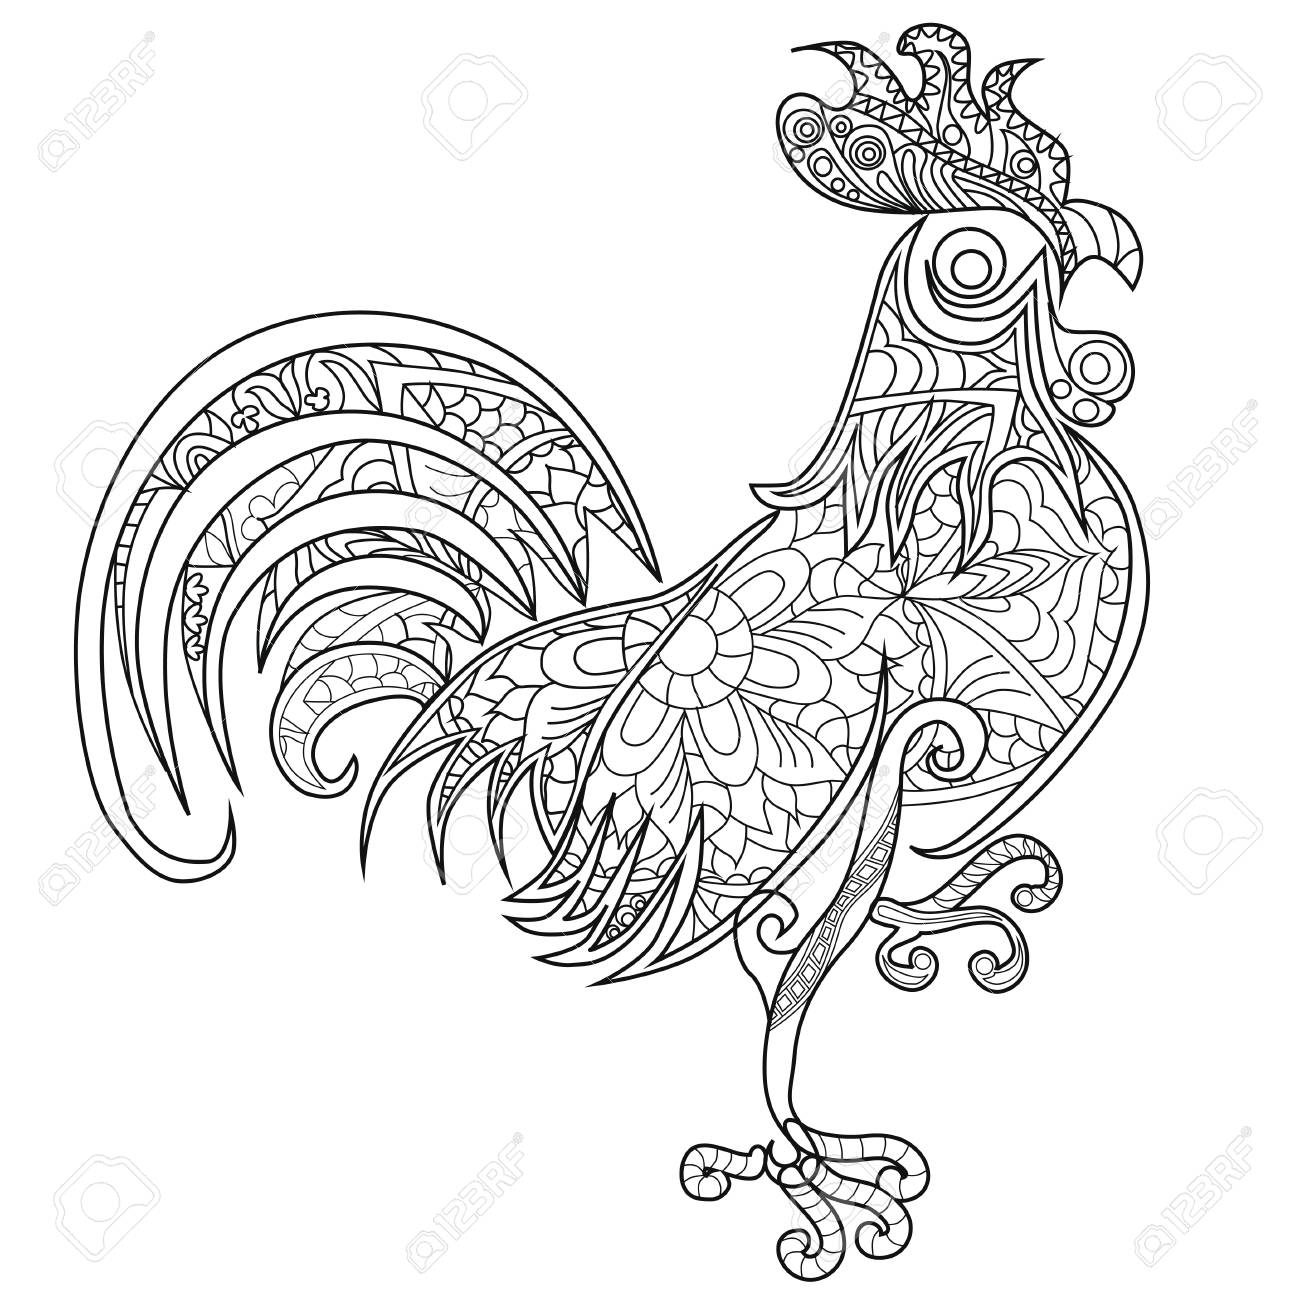 - Color Therapy: An Anti-Stress Coloring Book. Rooster. Royalty Free